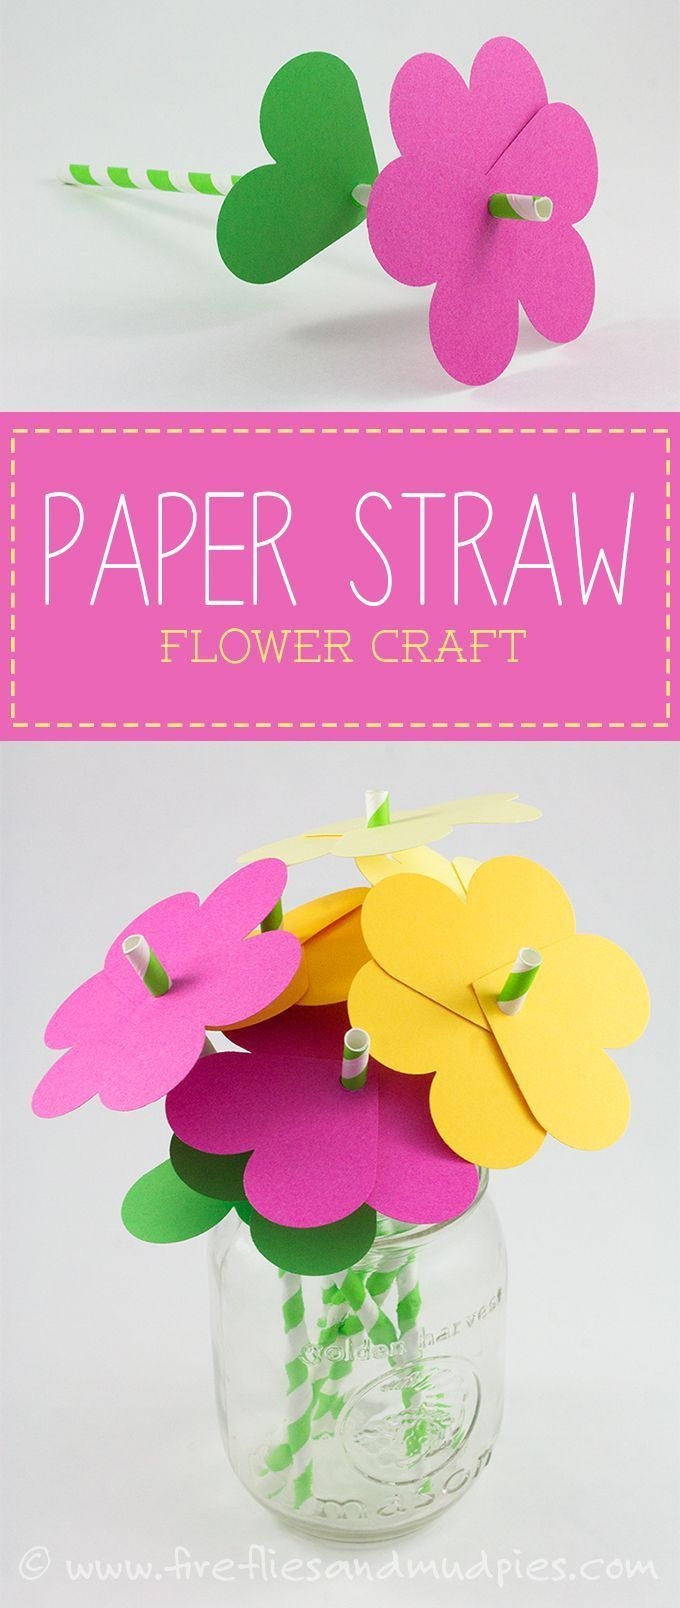 Paper Straw Flower Craft — Perfect for Spring! | Fireflies and Mud Pies